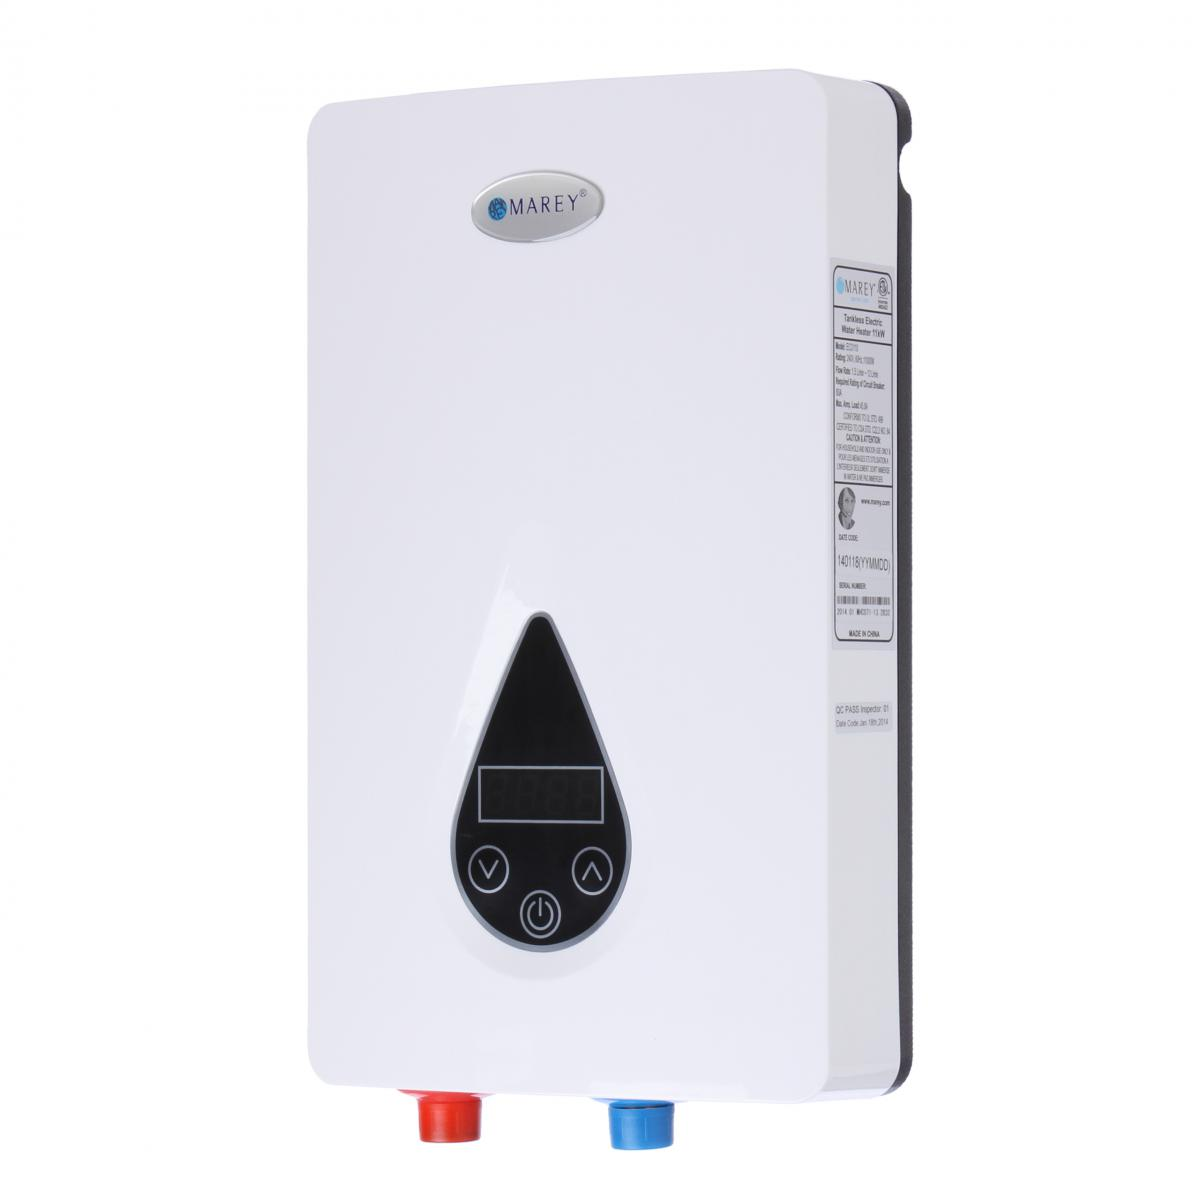 Marey Tankless Hot Water Heater 3 Gpm Electric On